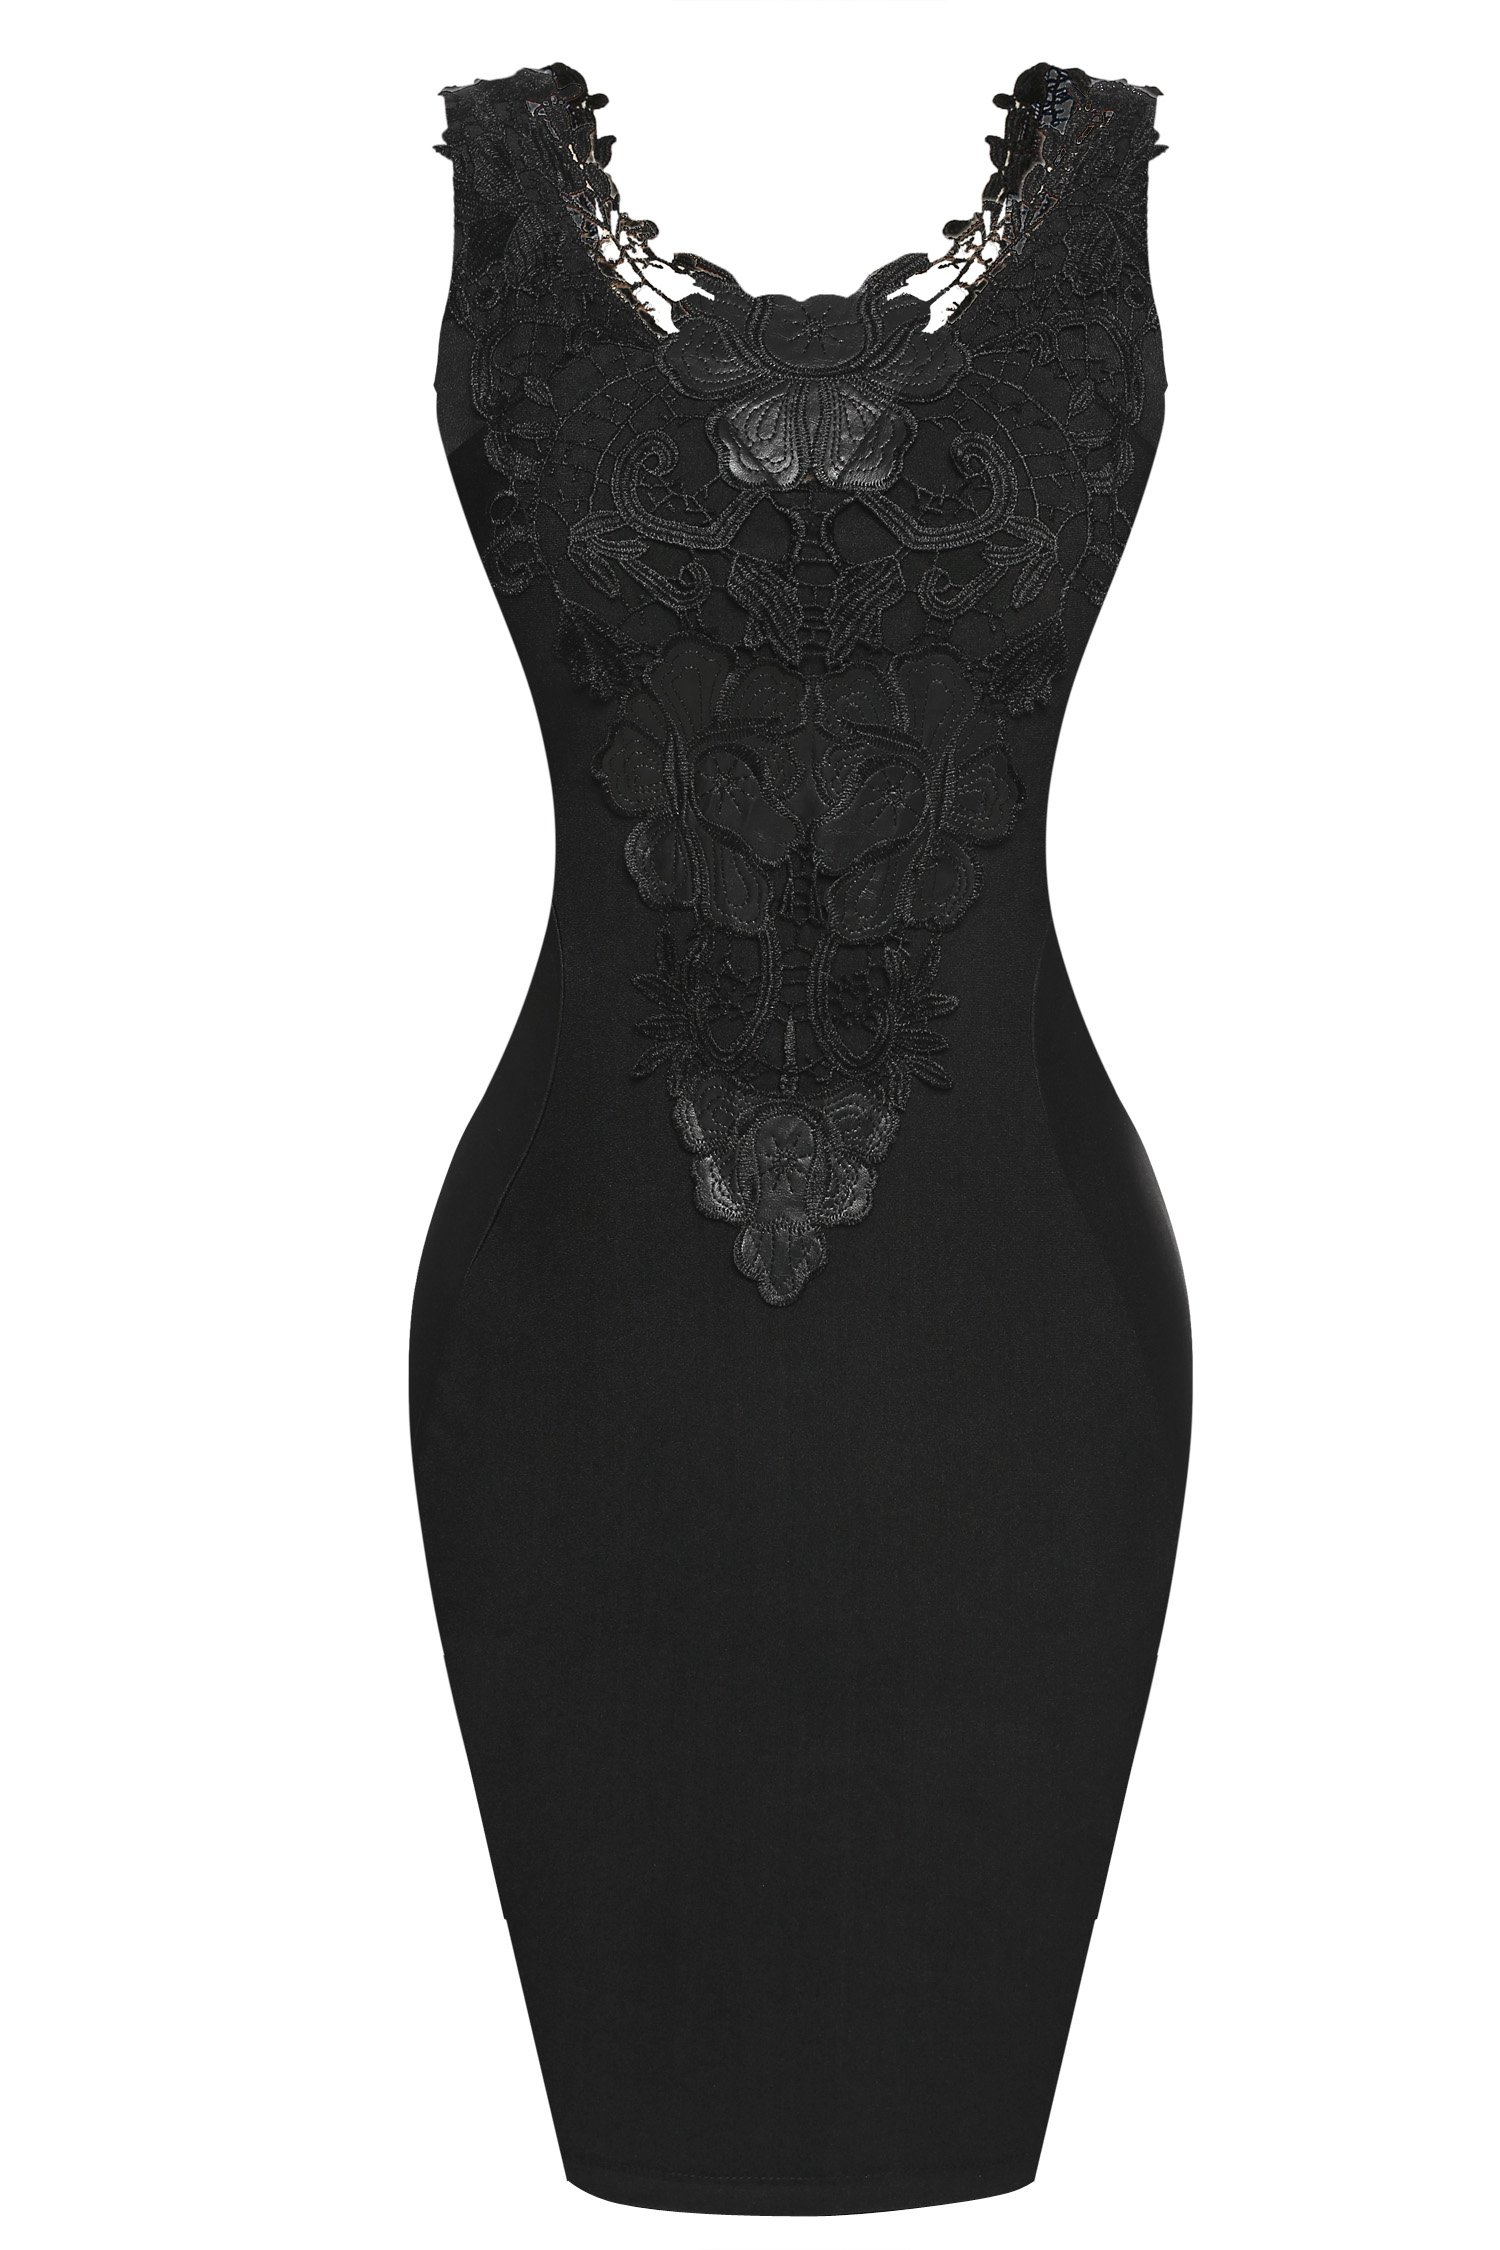 Zeagoo Women's Sleeveless Lace Neck Dress Evening Cocktail Party Dress,Large,Black